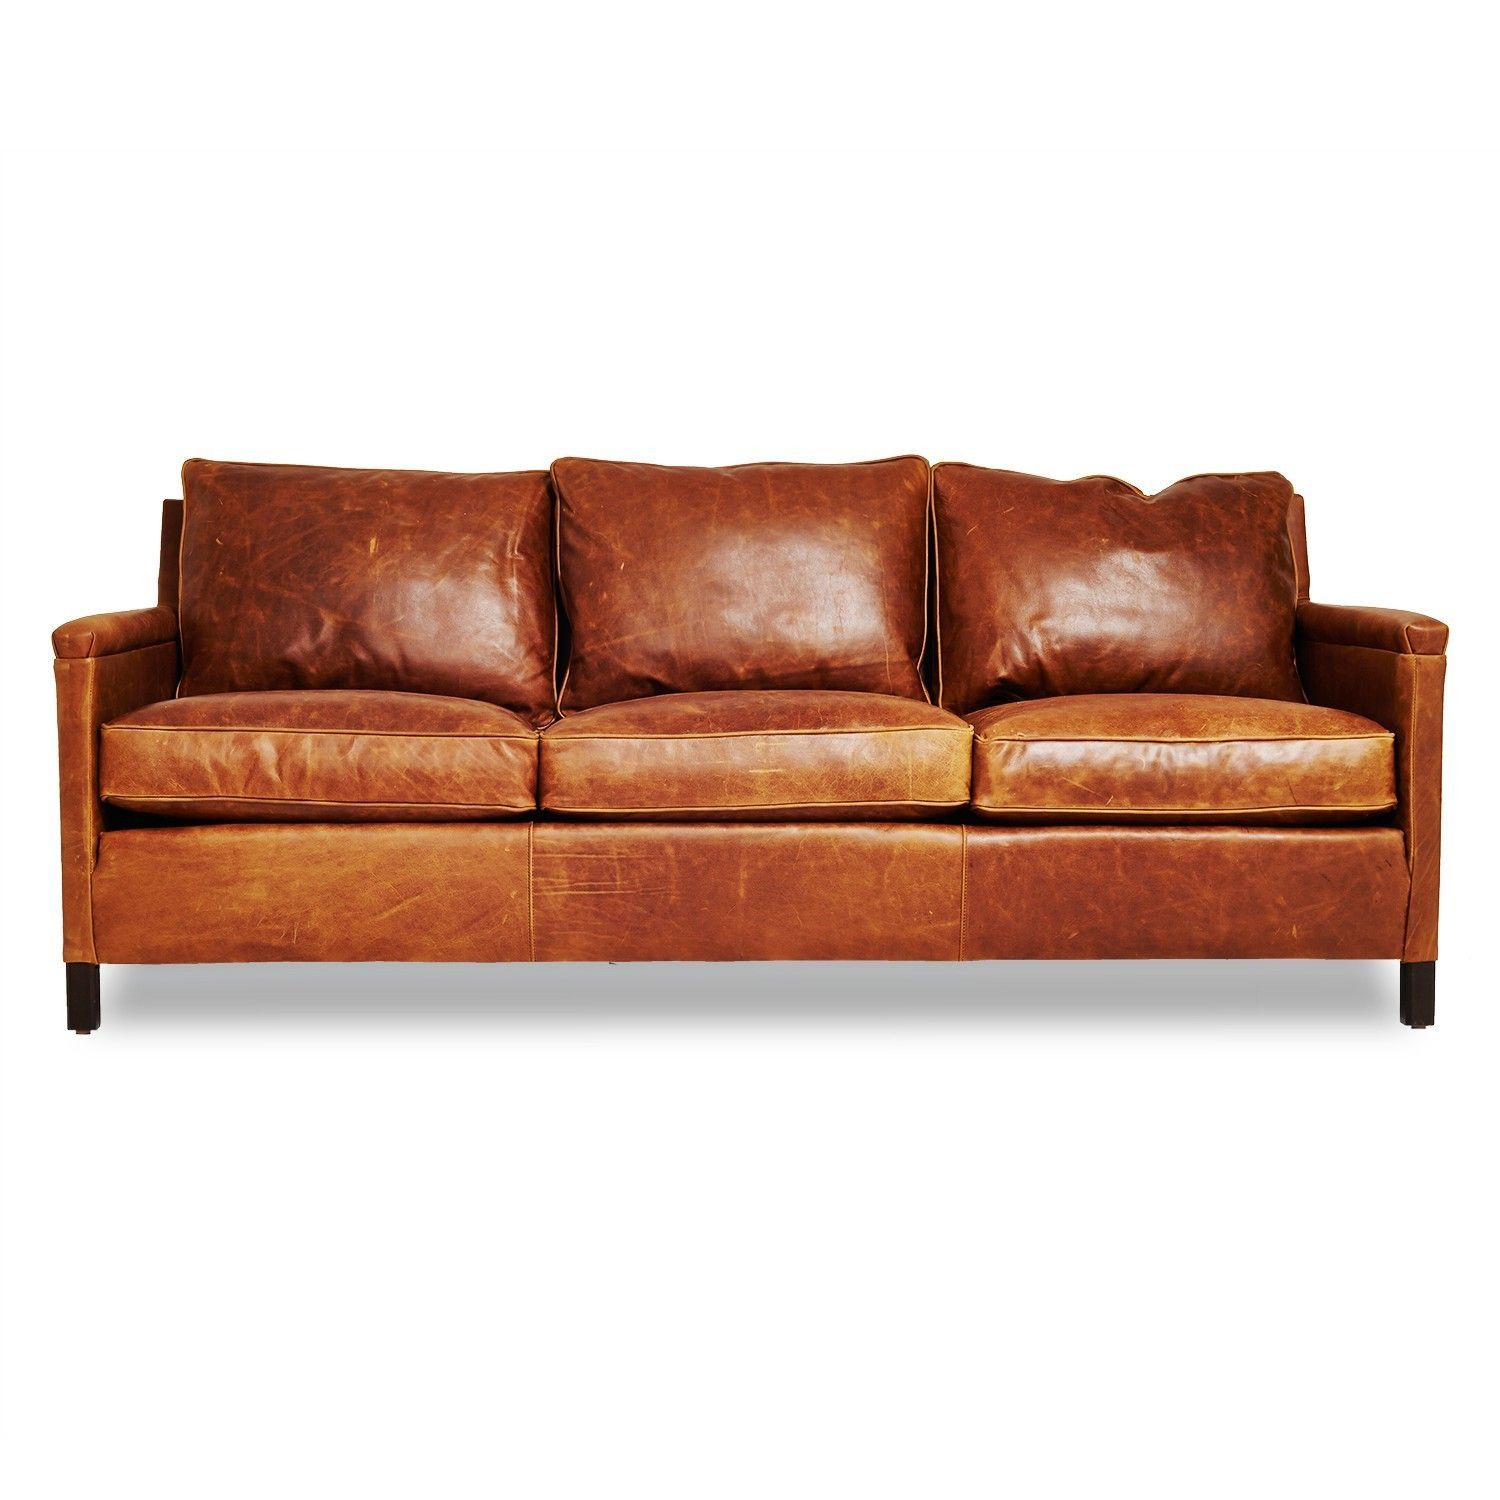 Burnt Orange Leather Sofa Used Rustic Brown Sectional Couches 3 Seater Design Reclining